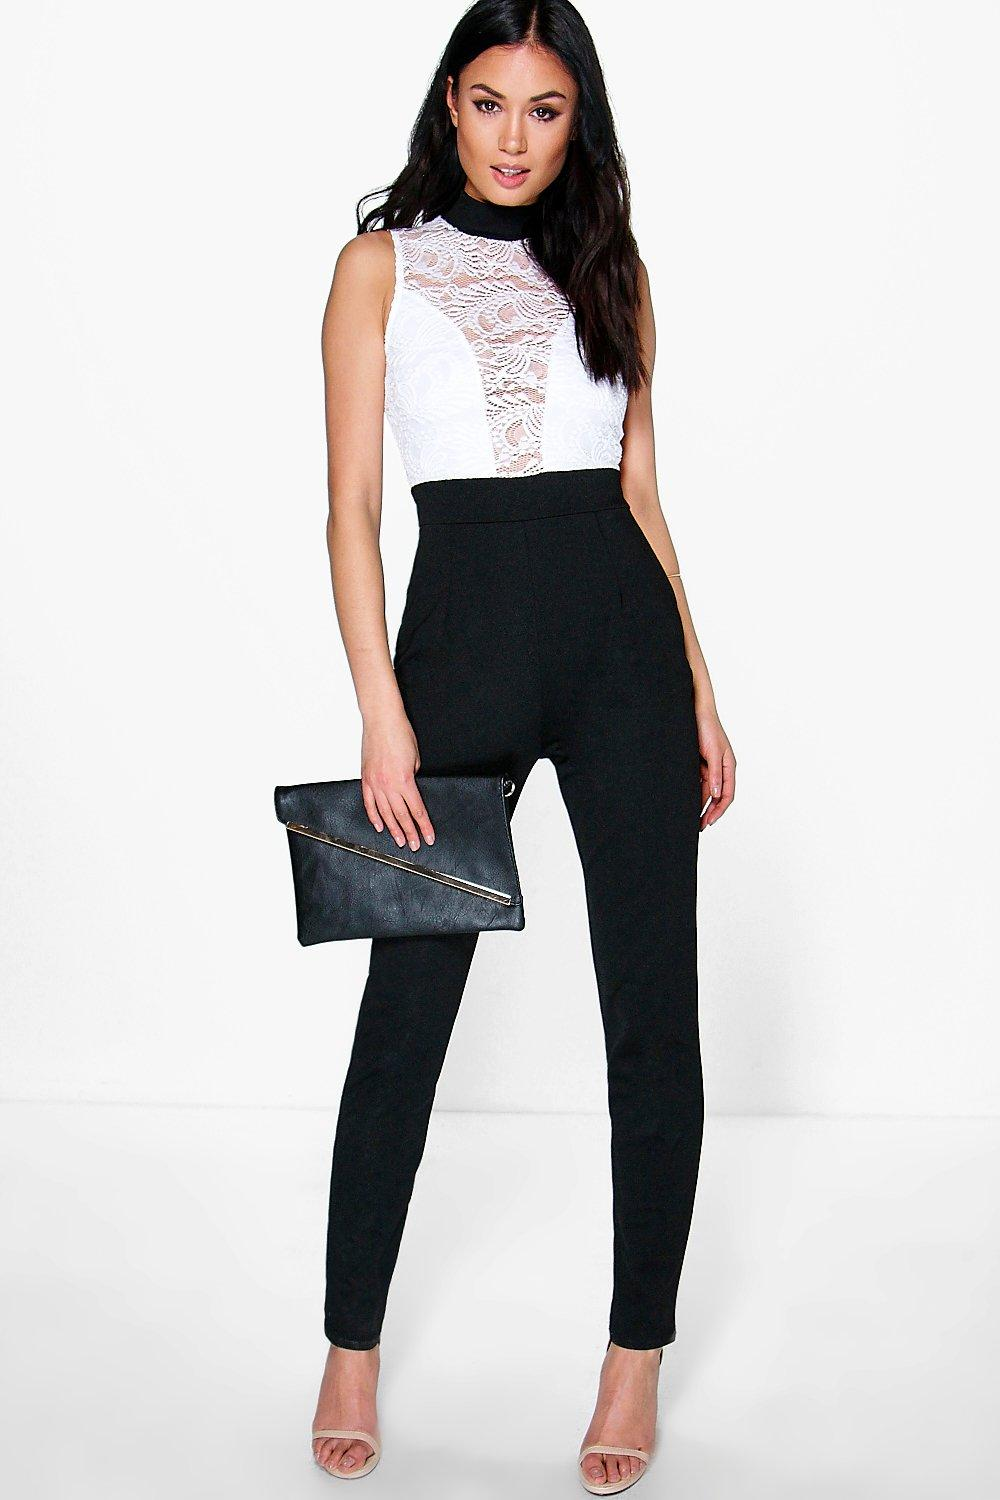 Jess Barely There Lace Skinny Leg Jumpsuit at boohoo.com